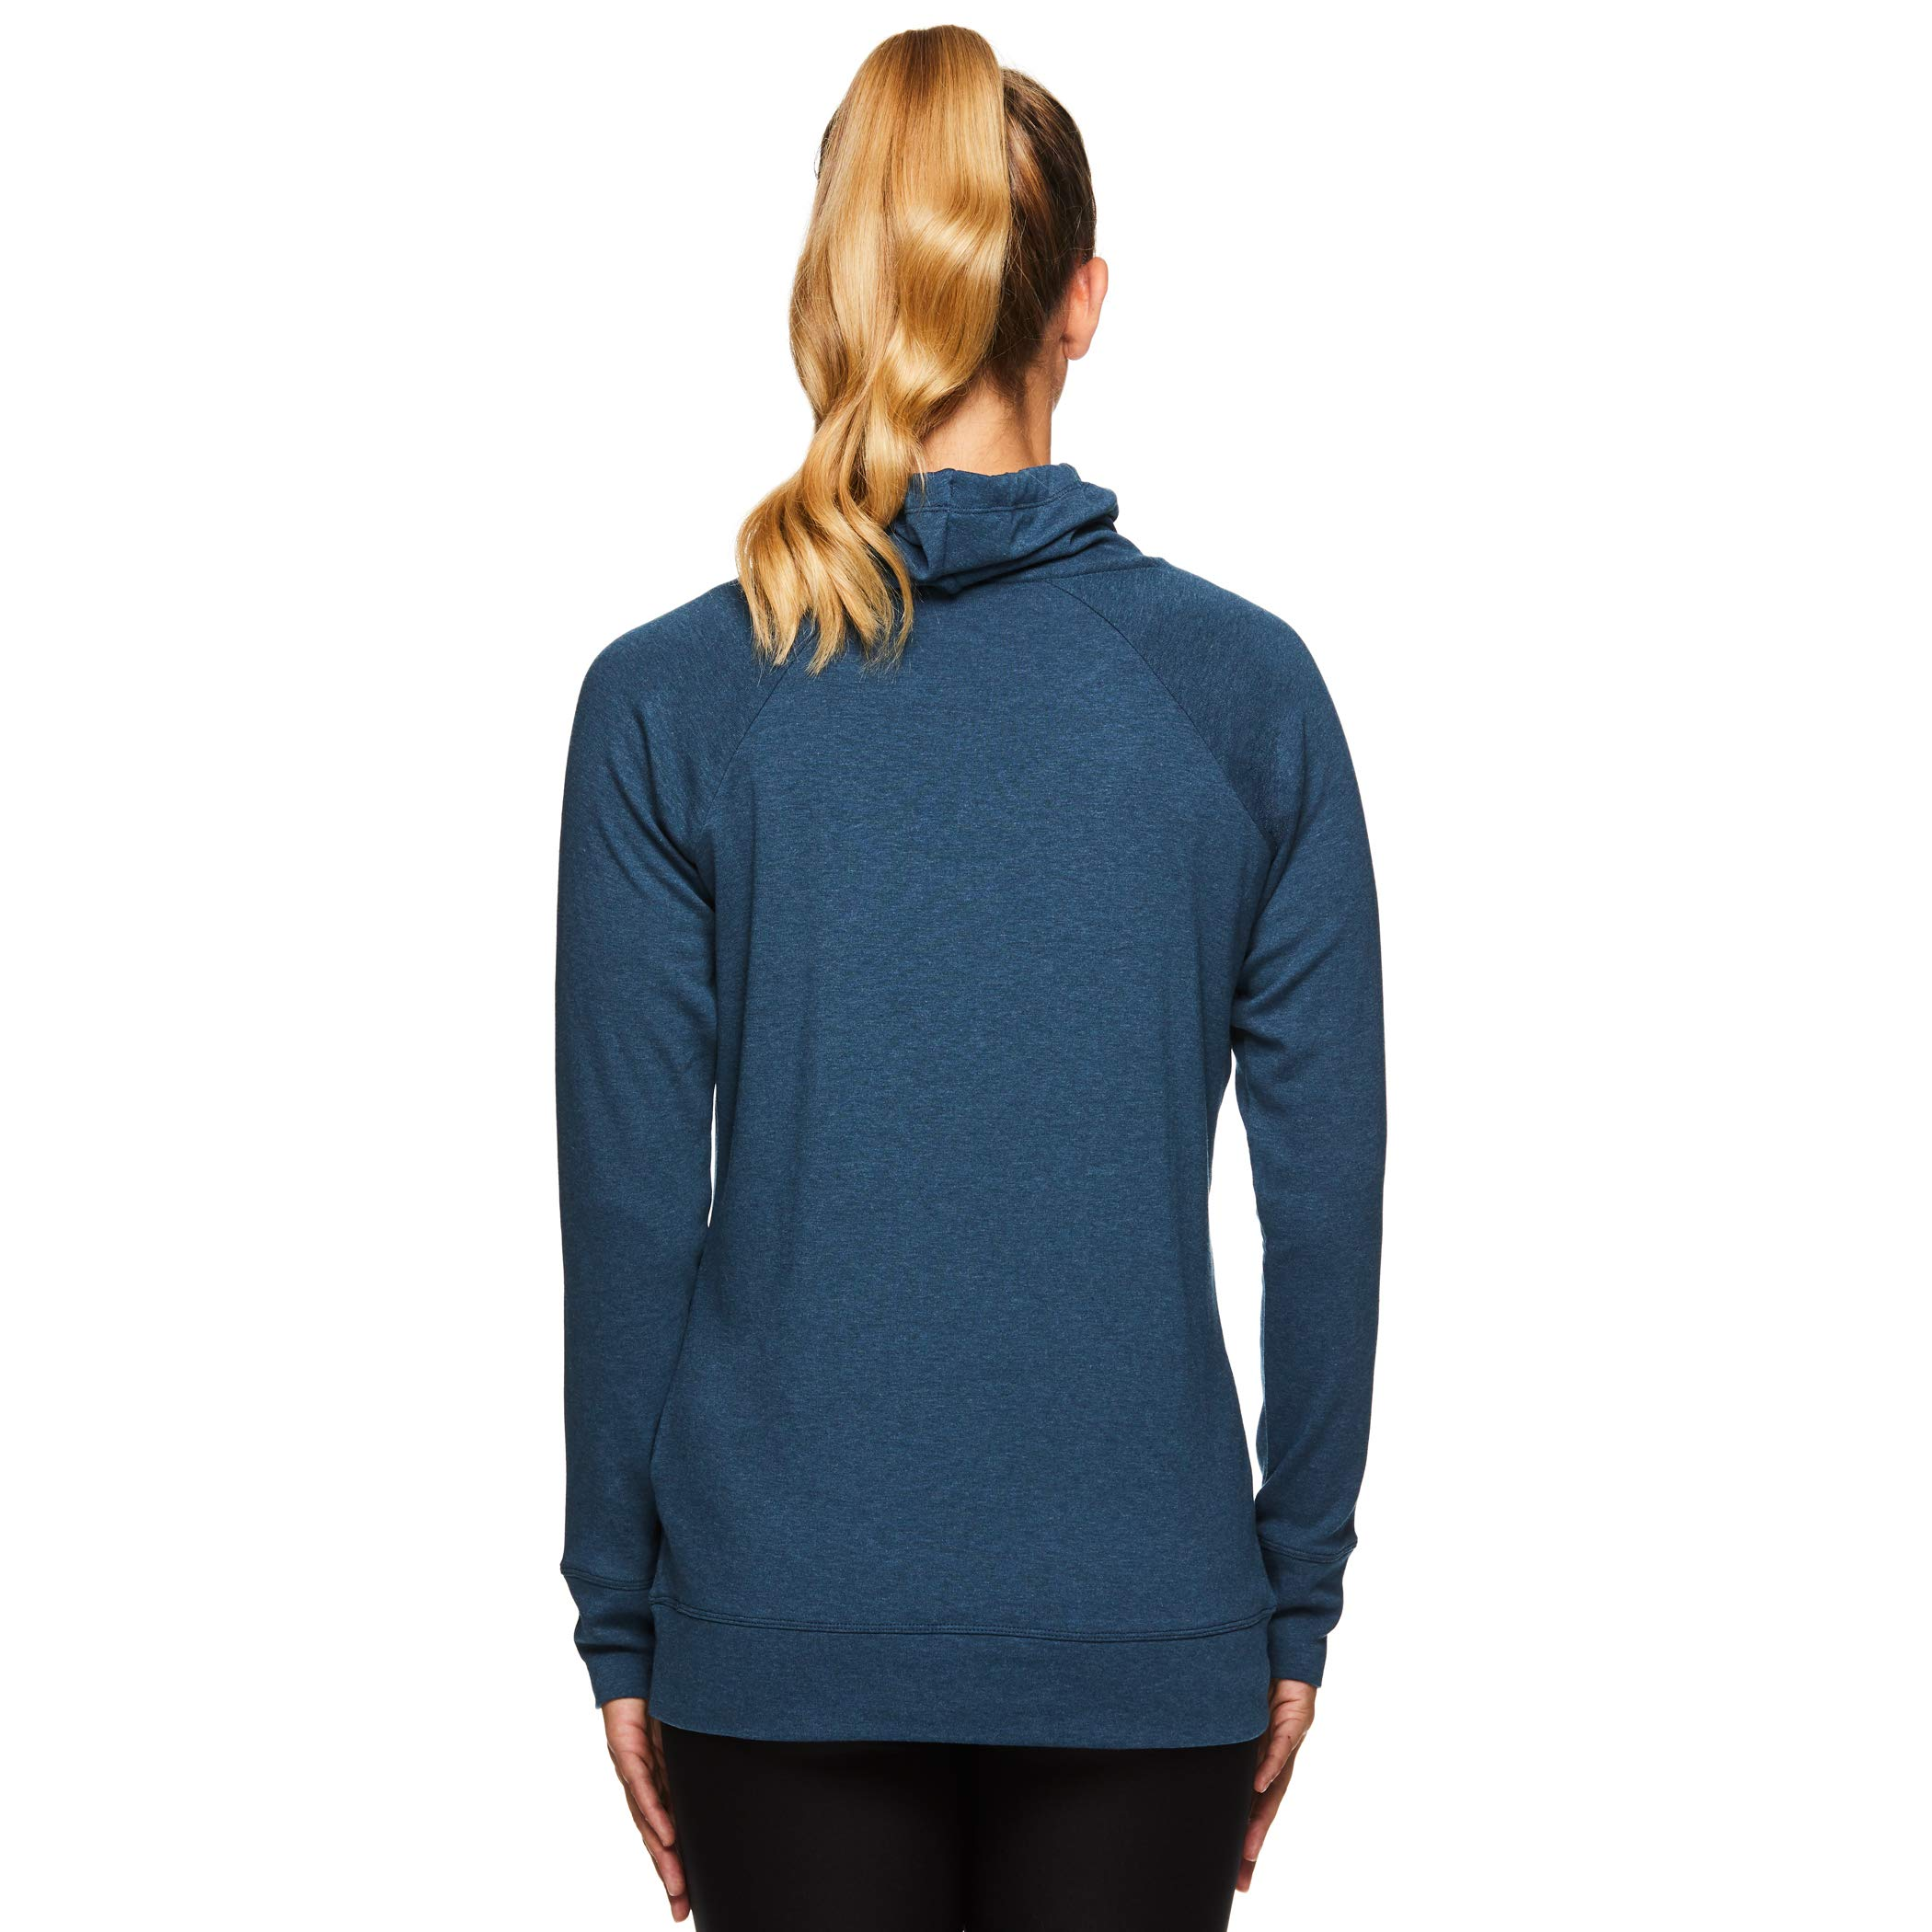 Gaiam Women's Pullover Hoodie Yoga Sweatshirt - Lightweight Long Sleeve Athleisure Sweater - Grace Moonlit Ocean Blue Heather, Large by Gaiam